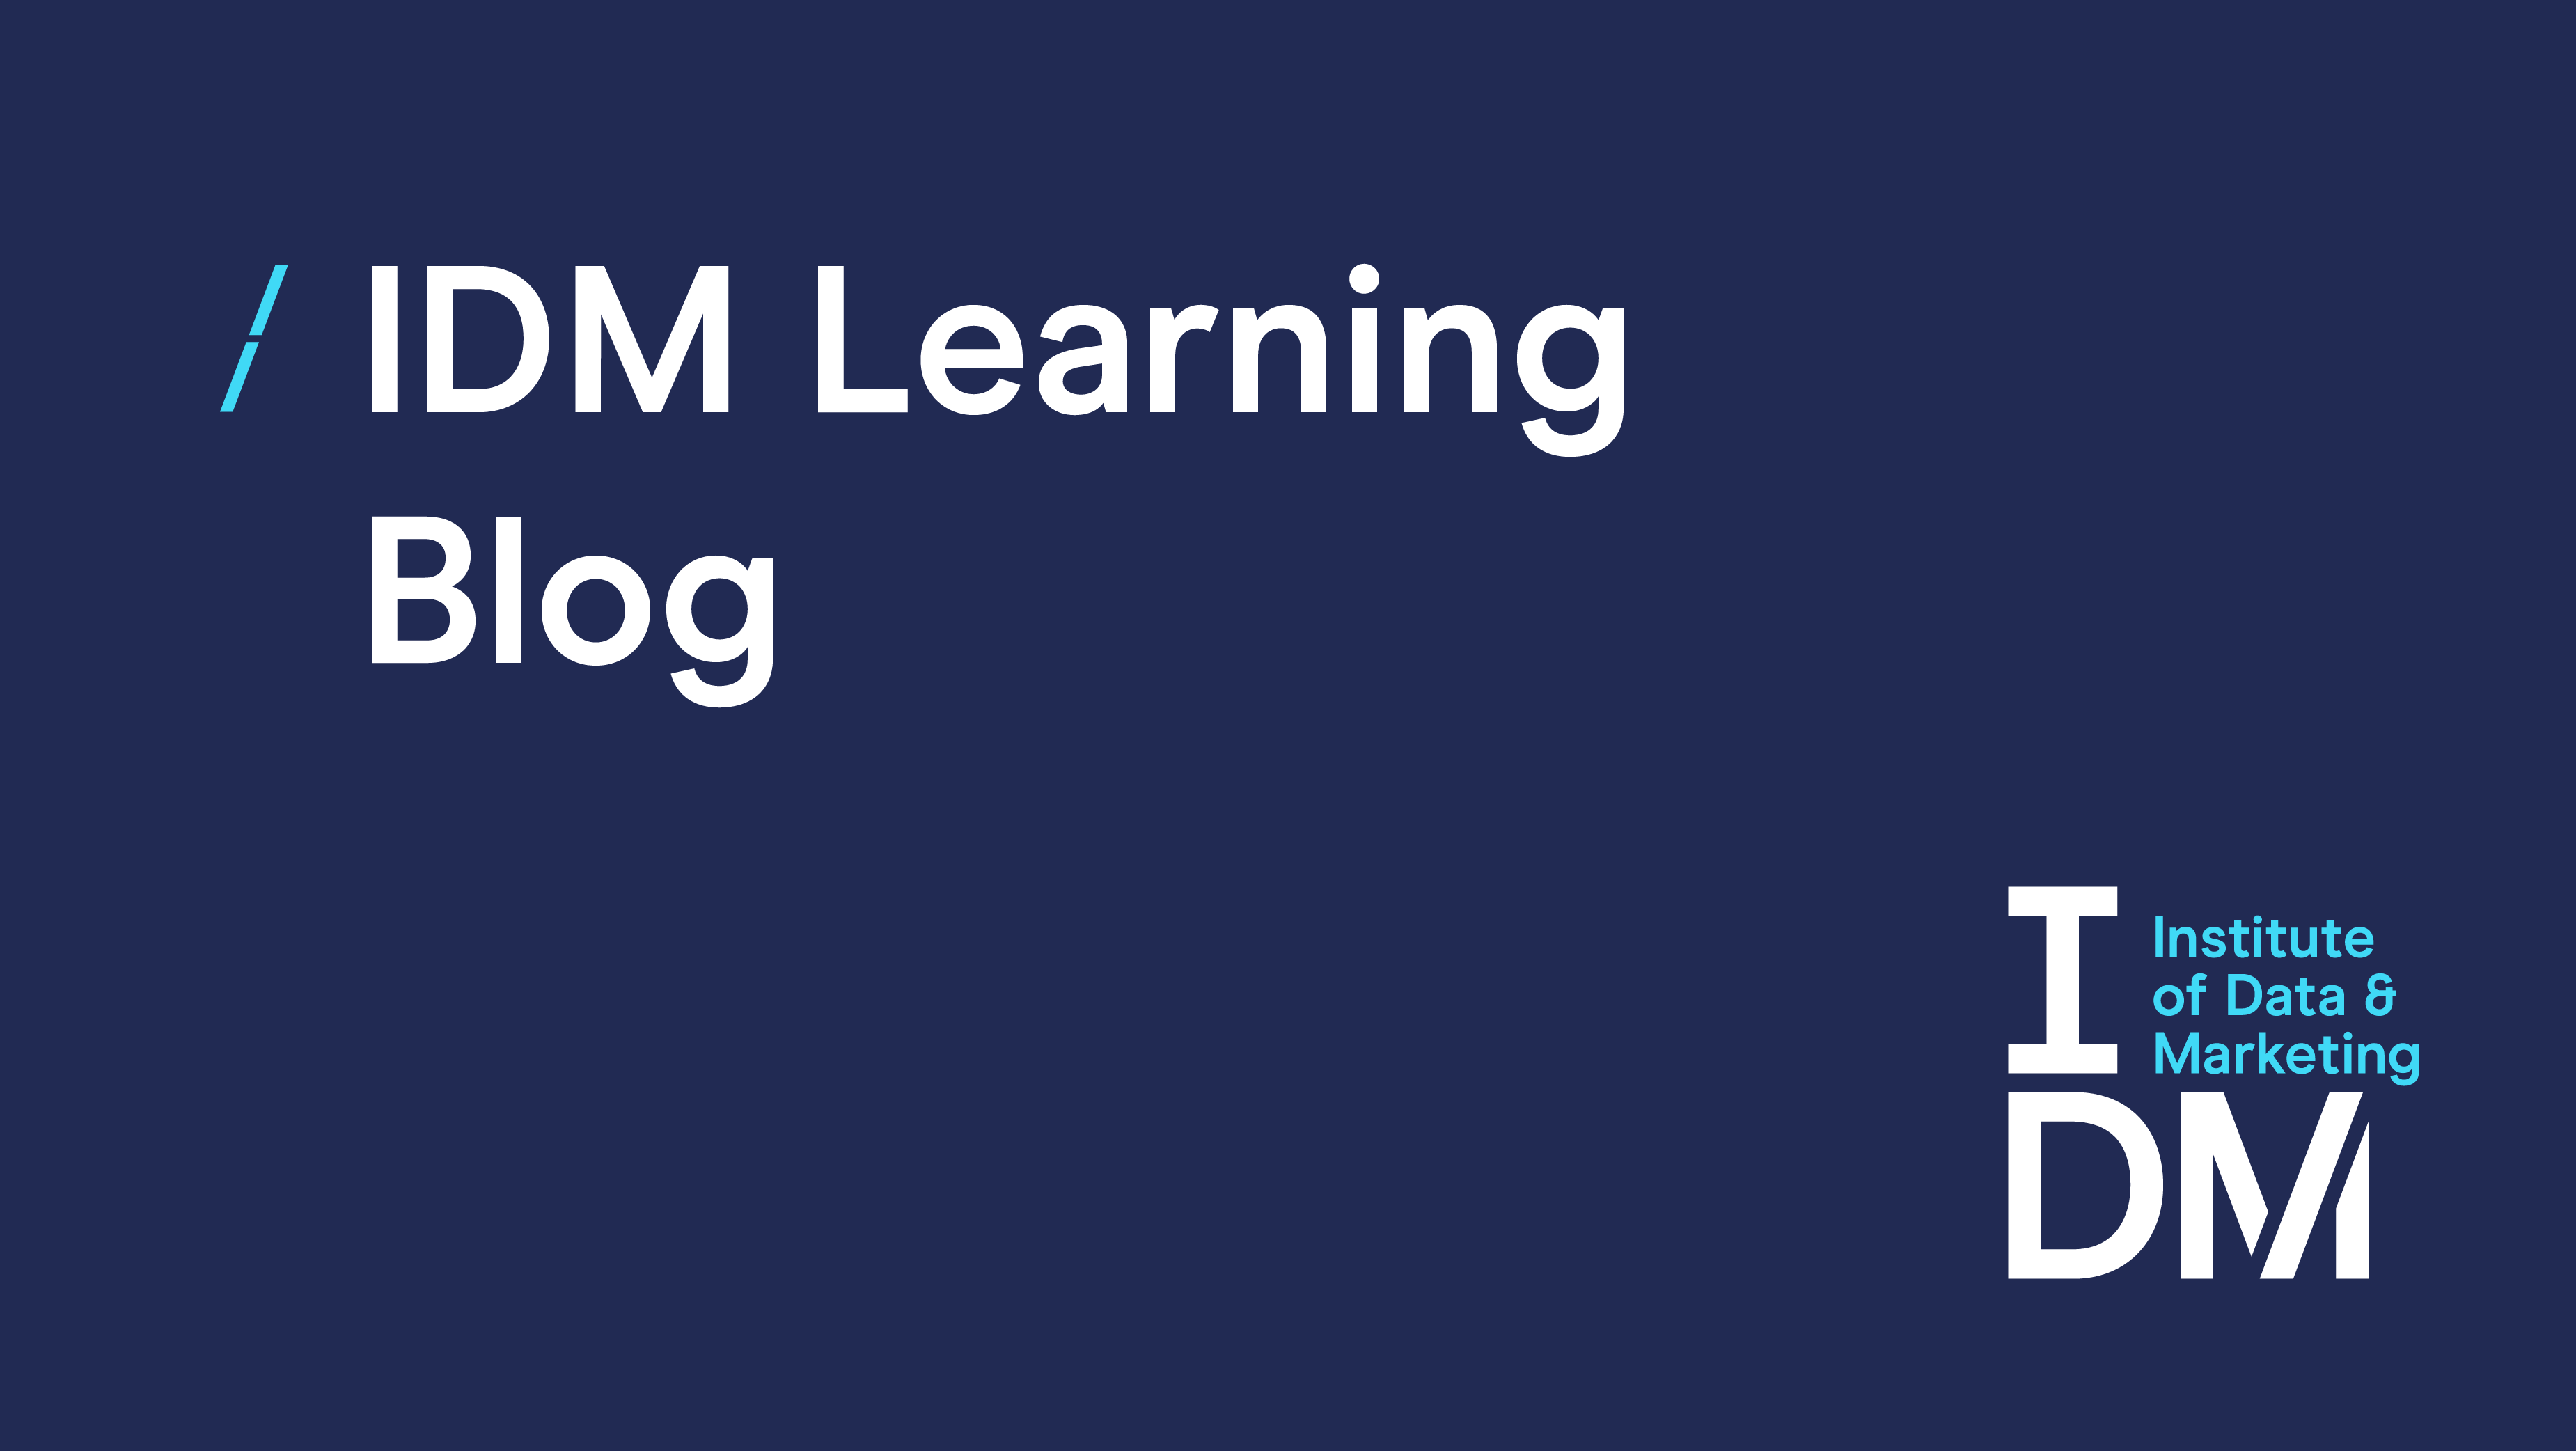 idm-learning-blog-(003).png